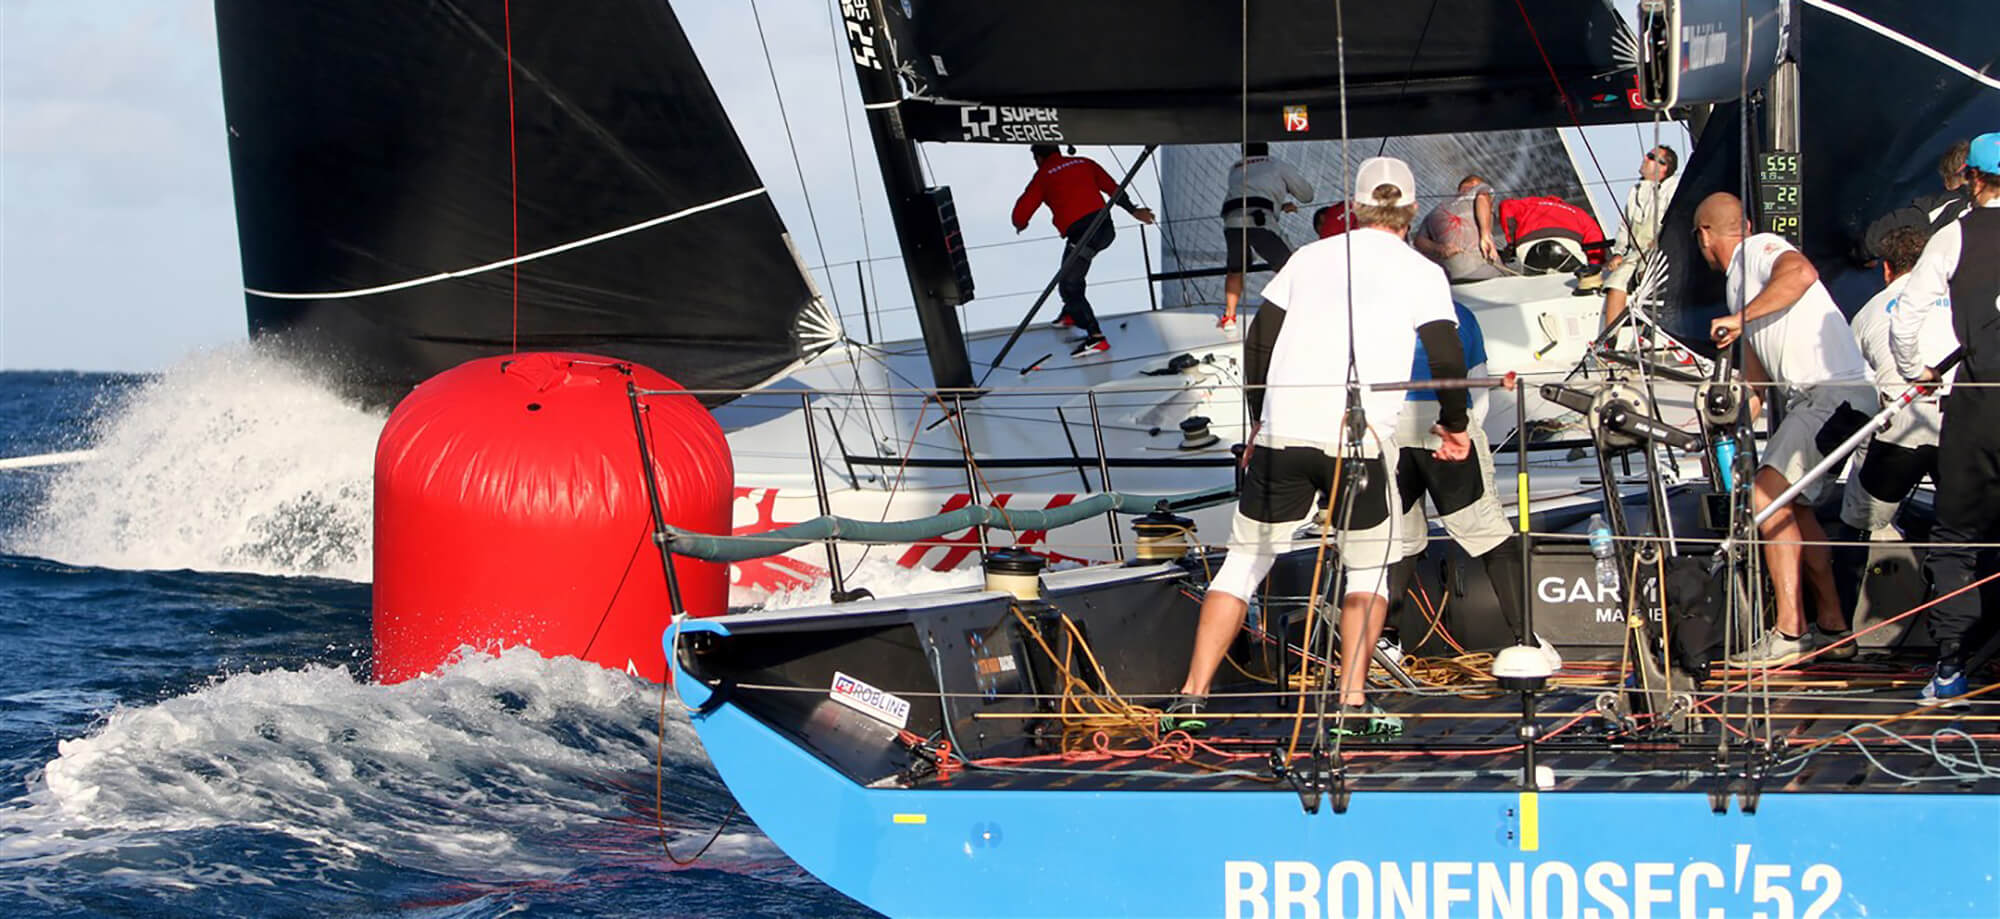 Bronenosec TP52 Sailing Team